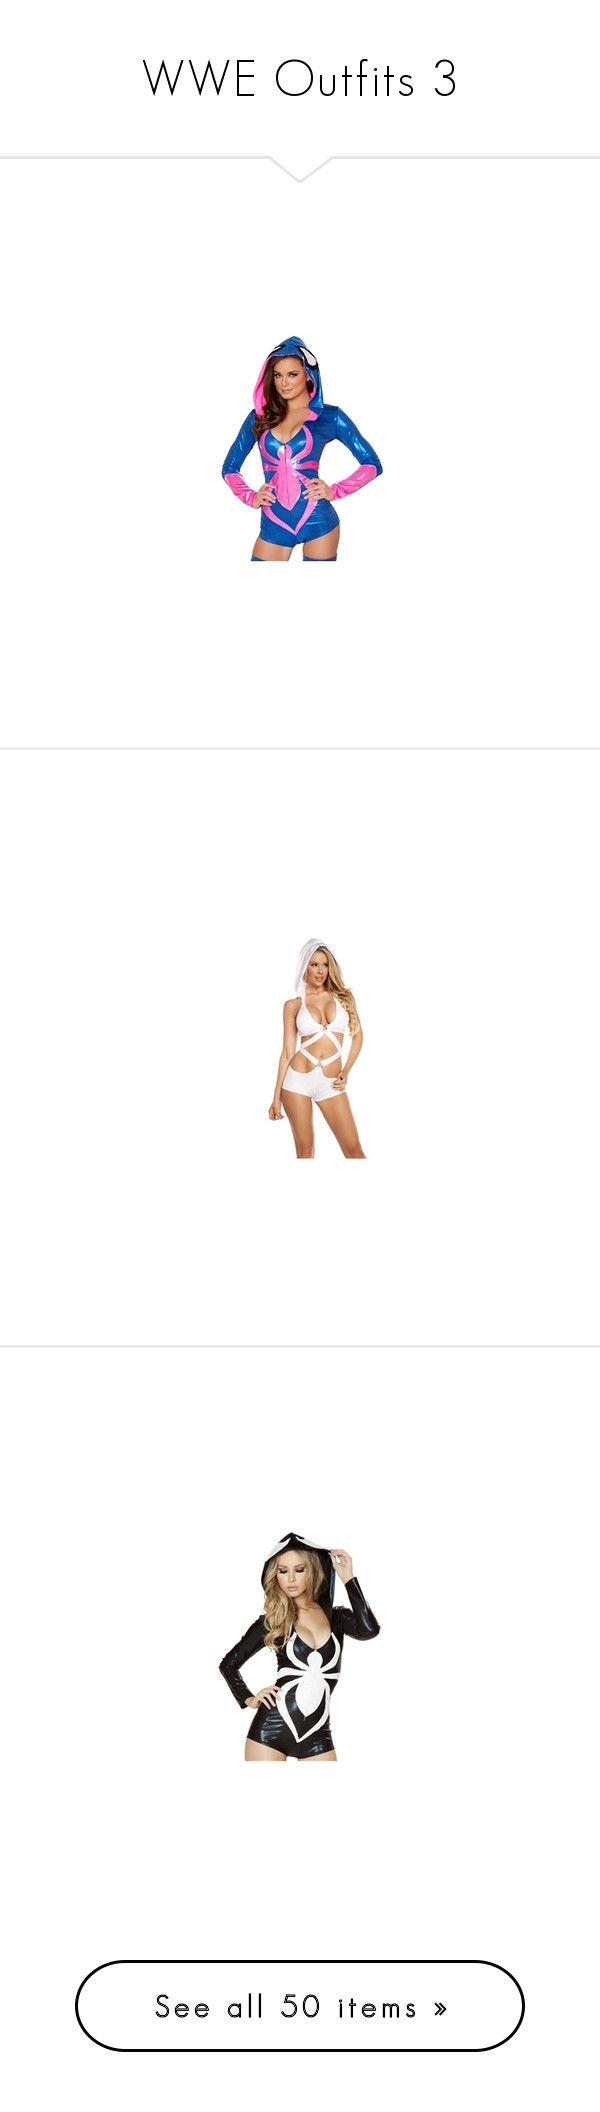 """""""WWE Outfits 3"""" by rayvrayv98 ❤ liked on Polyvore featuring jumpsuits, rompers, blue rompers, blue romper, playsuit romper, pink rompers, pink romper, dresses, hooded romper and tops"""